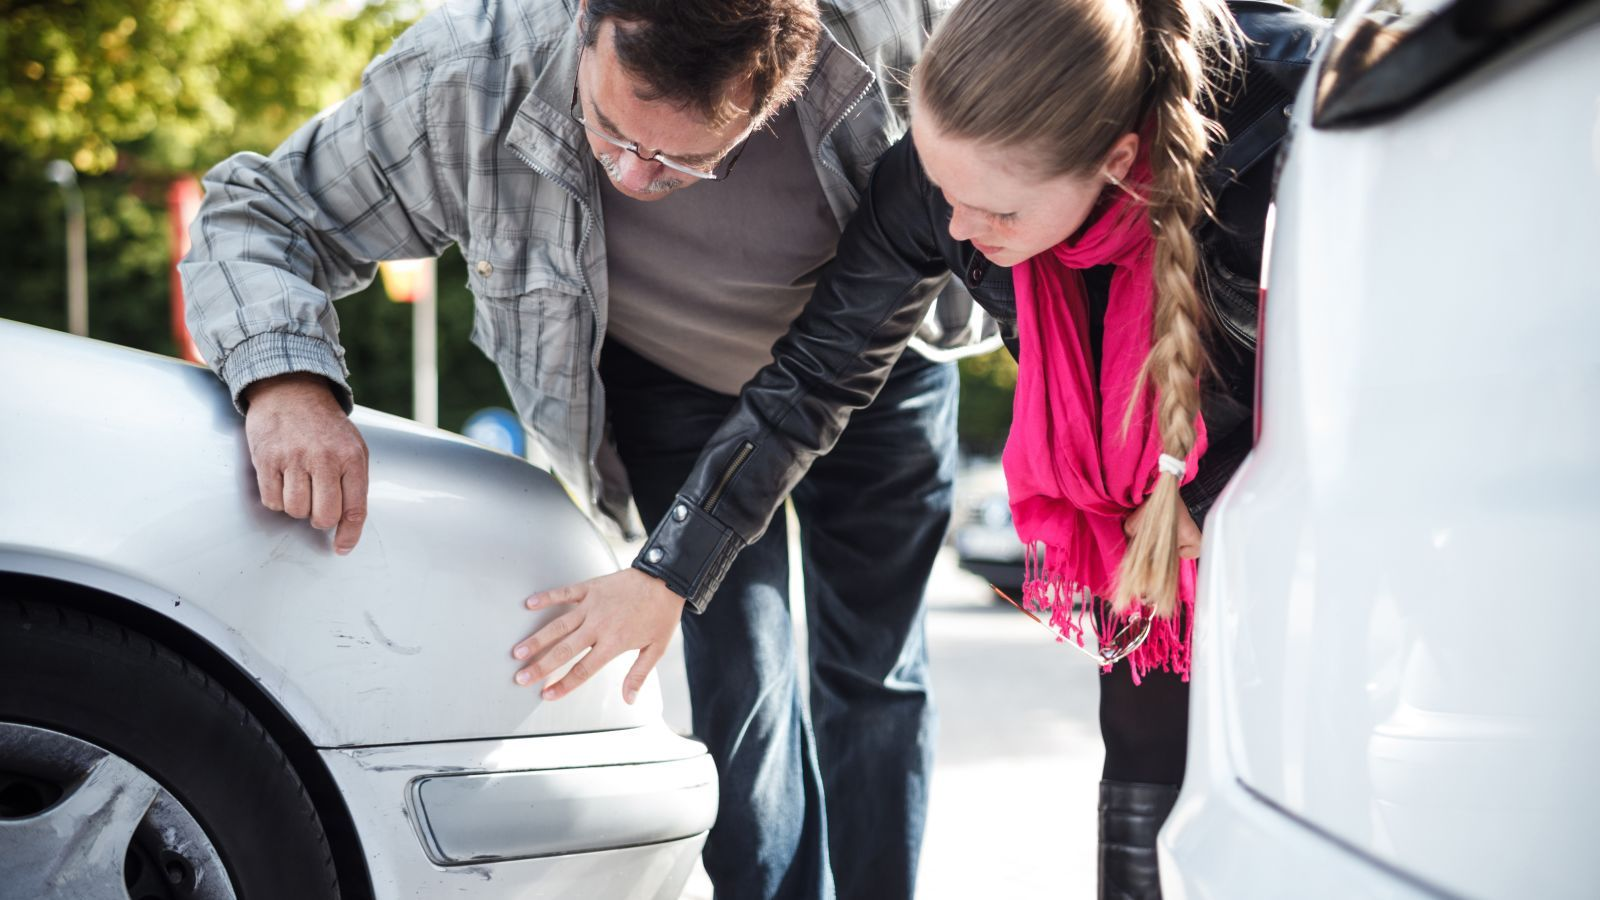 Here S Why You Get An Estimate For Minor Car Damage Before Filing